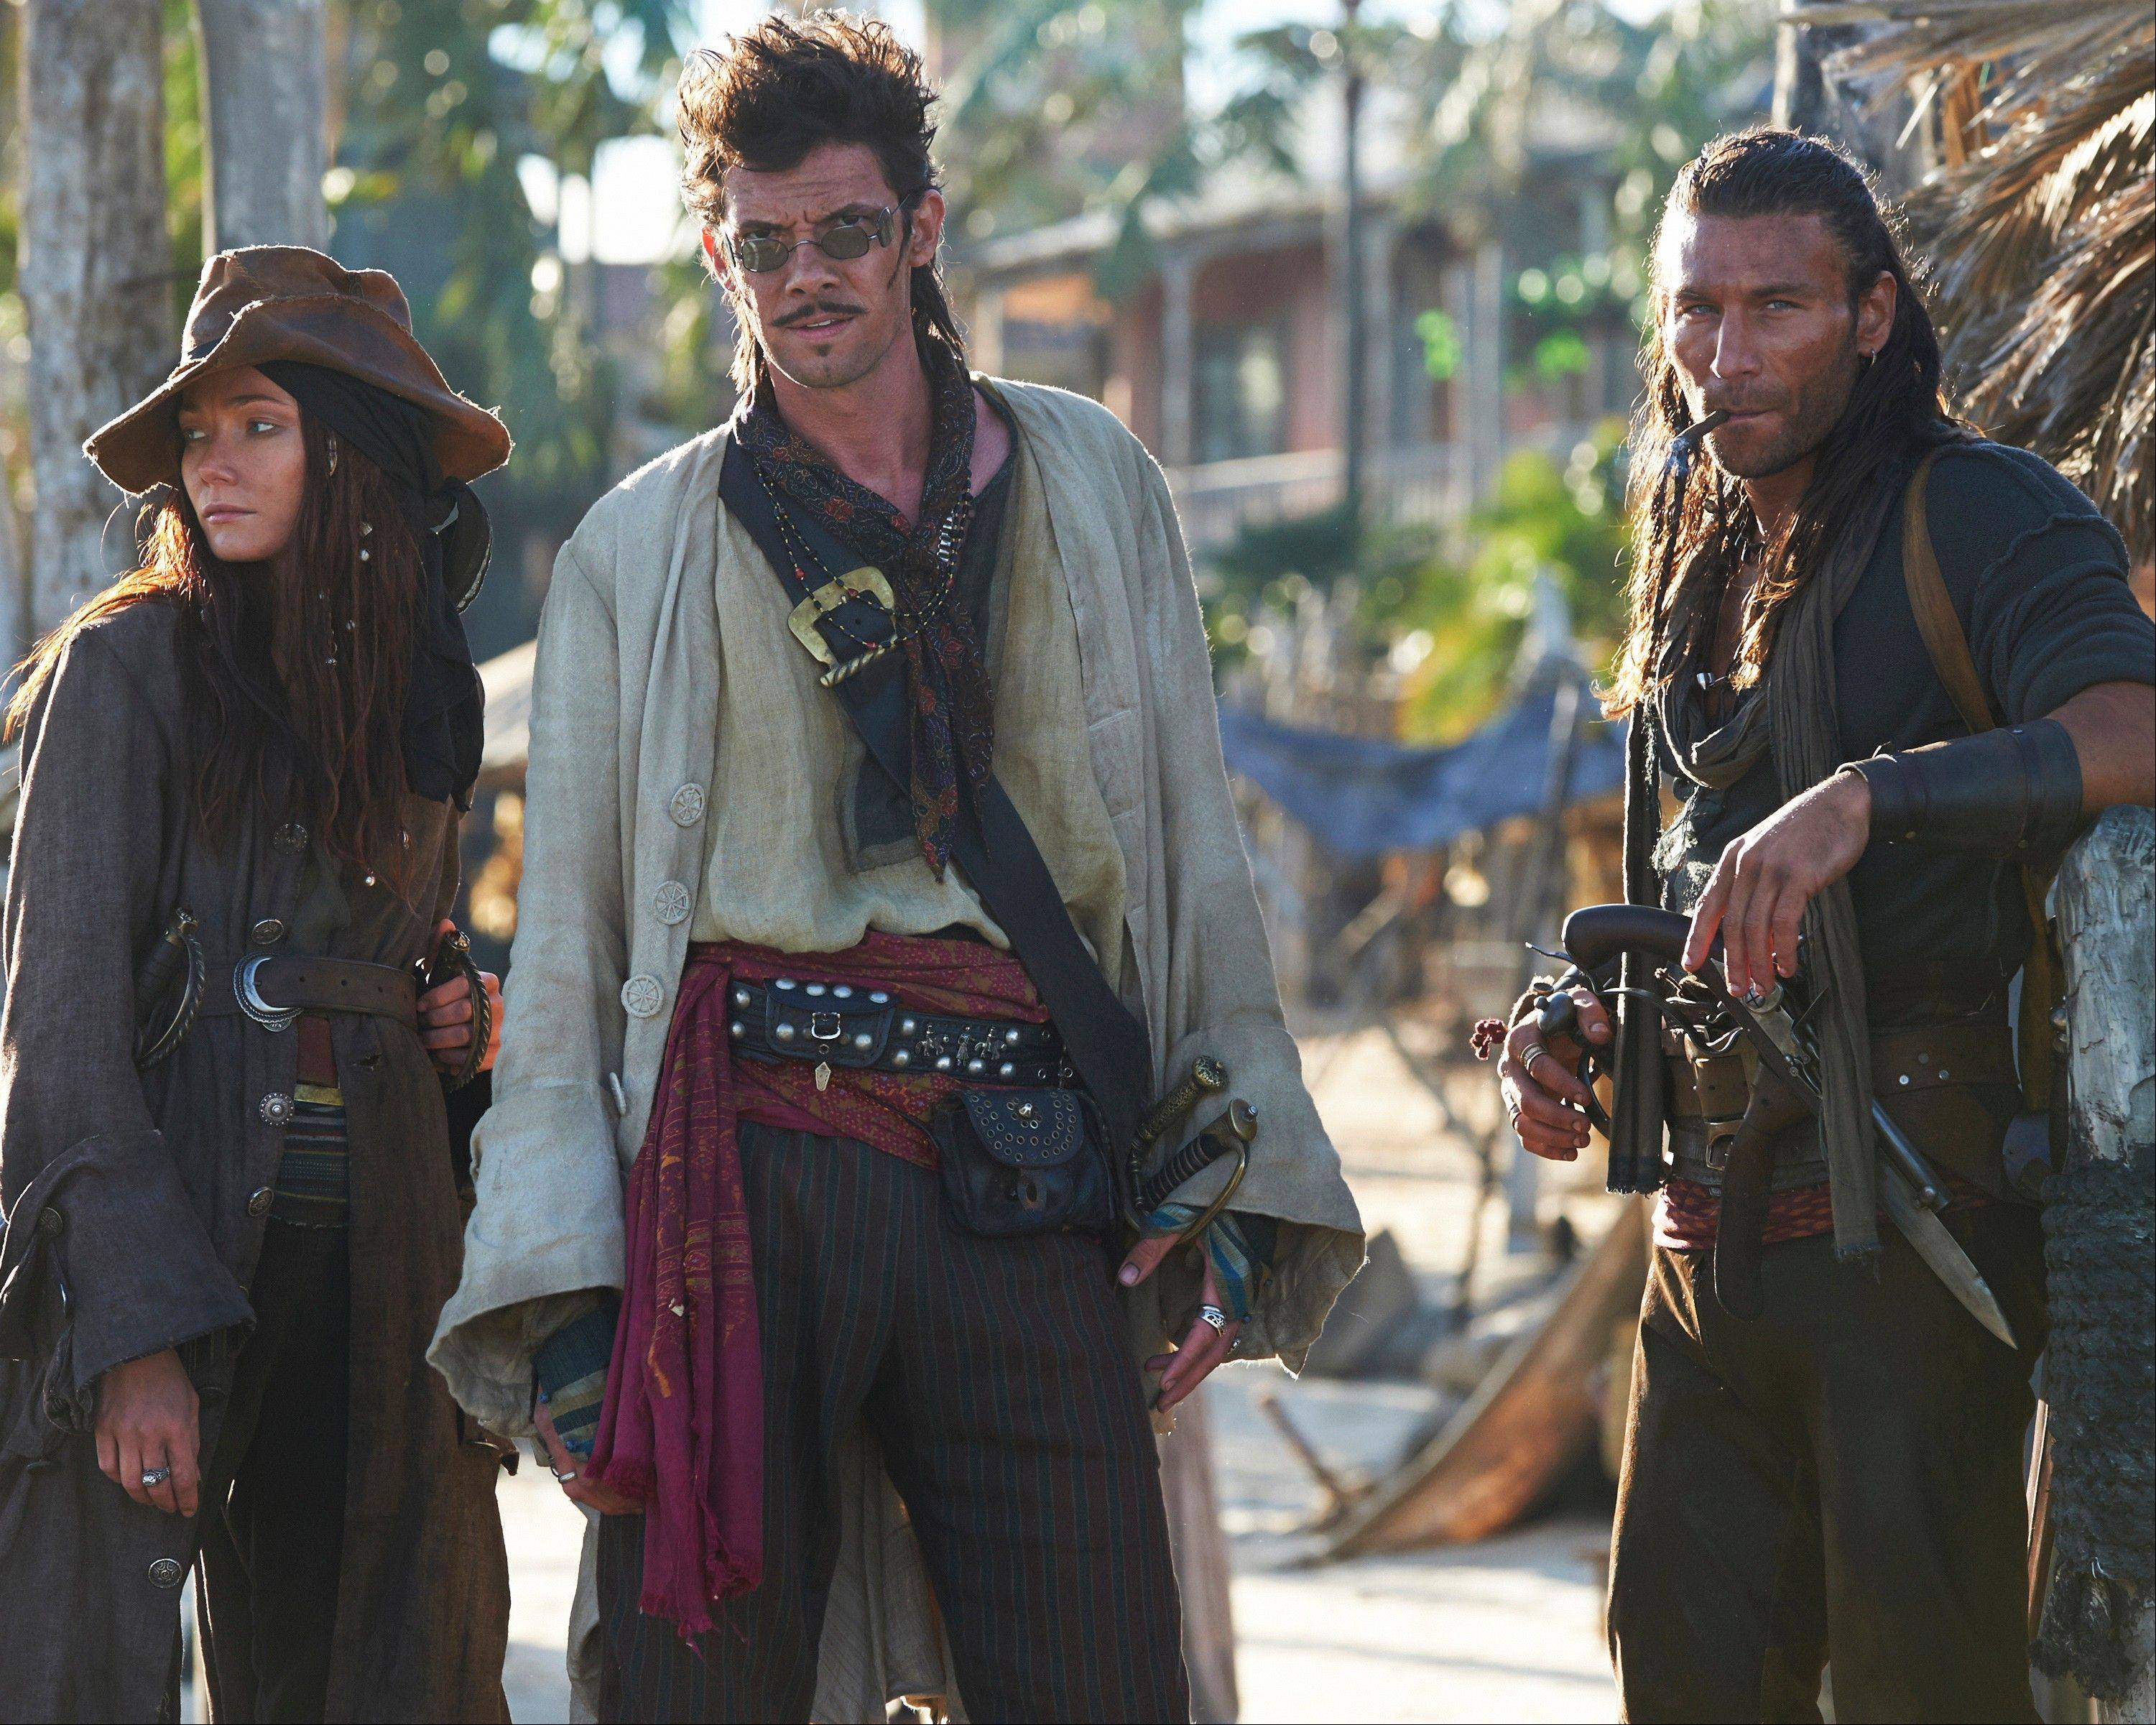 """Black Sails,"" starring Clara Paget, left, as Anne Bonny, Zach McGowan as Captain Charles Vane and Toby Schmidt as Jack Rackham, isn't scheduled to dock until next year, but Starz is screening the first episode of the mature pirate drama near the San Diego Convention Center during Comic-Con."